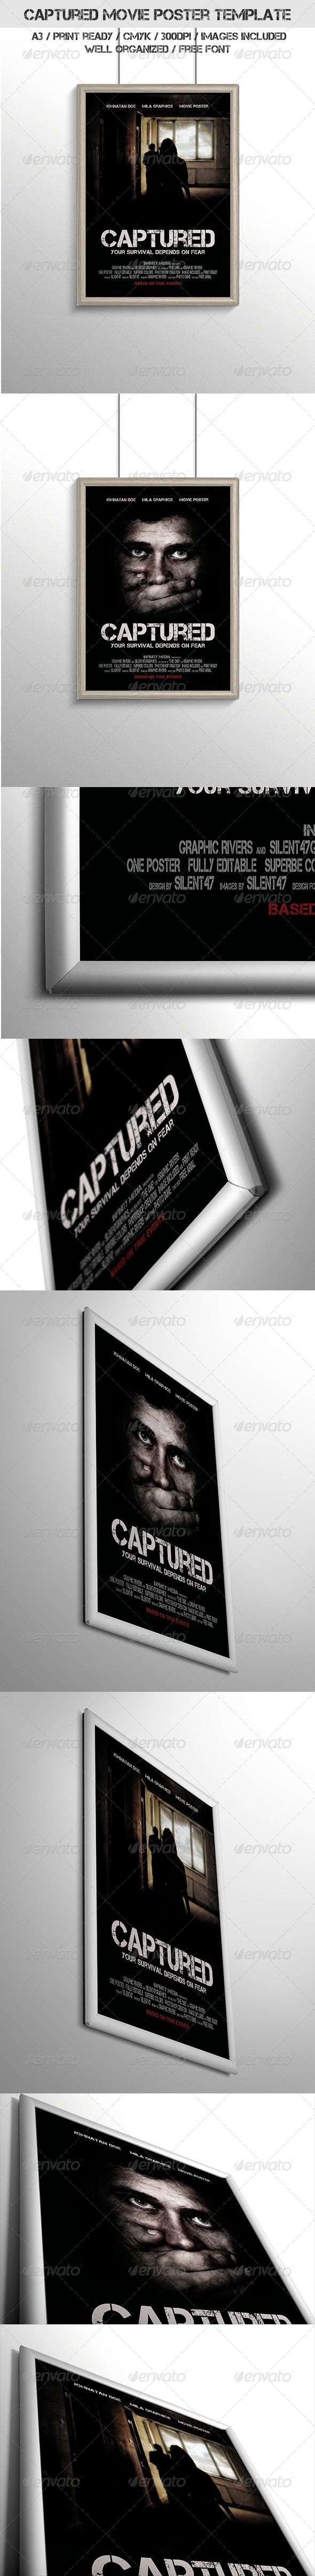 Download Captured Full-Movie Free